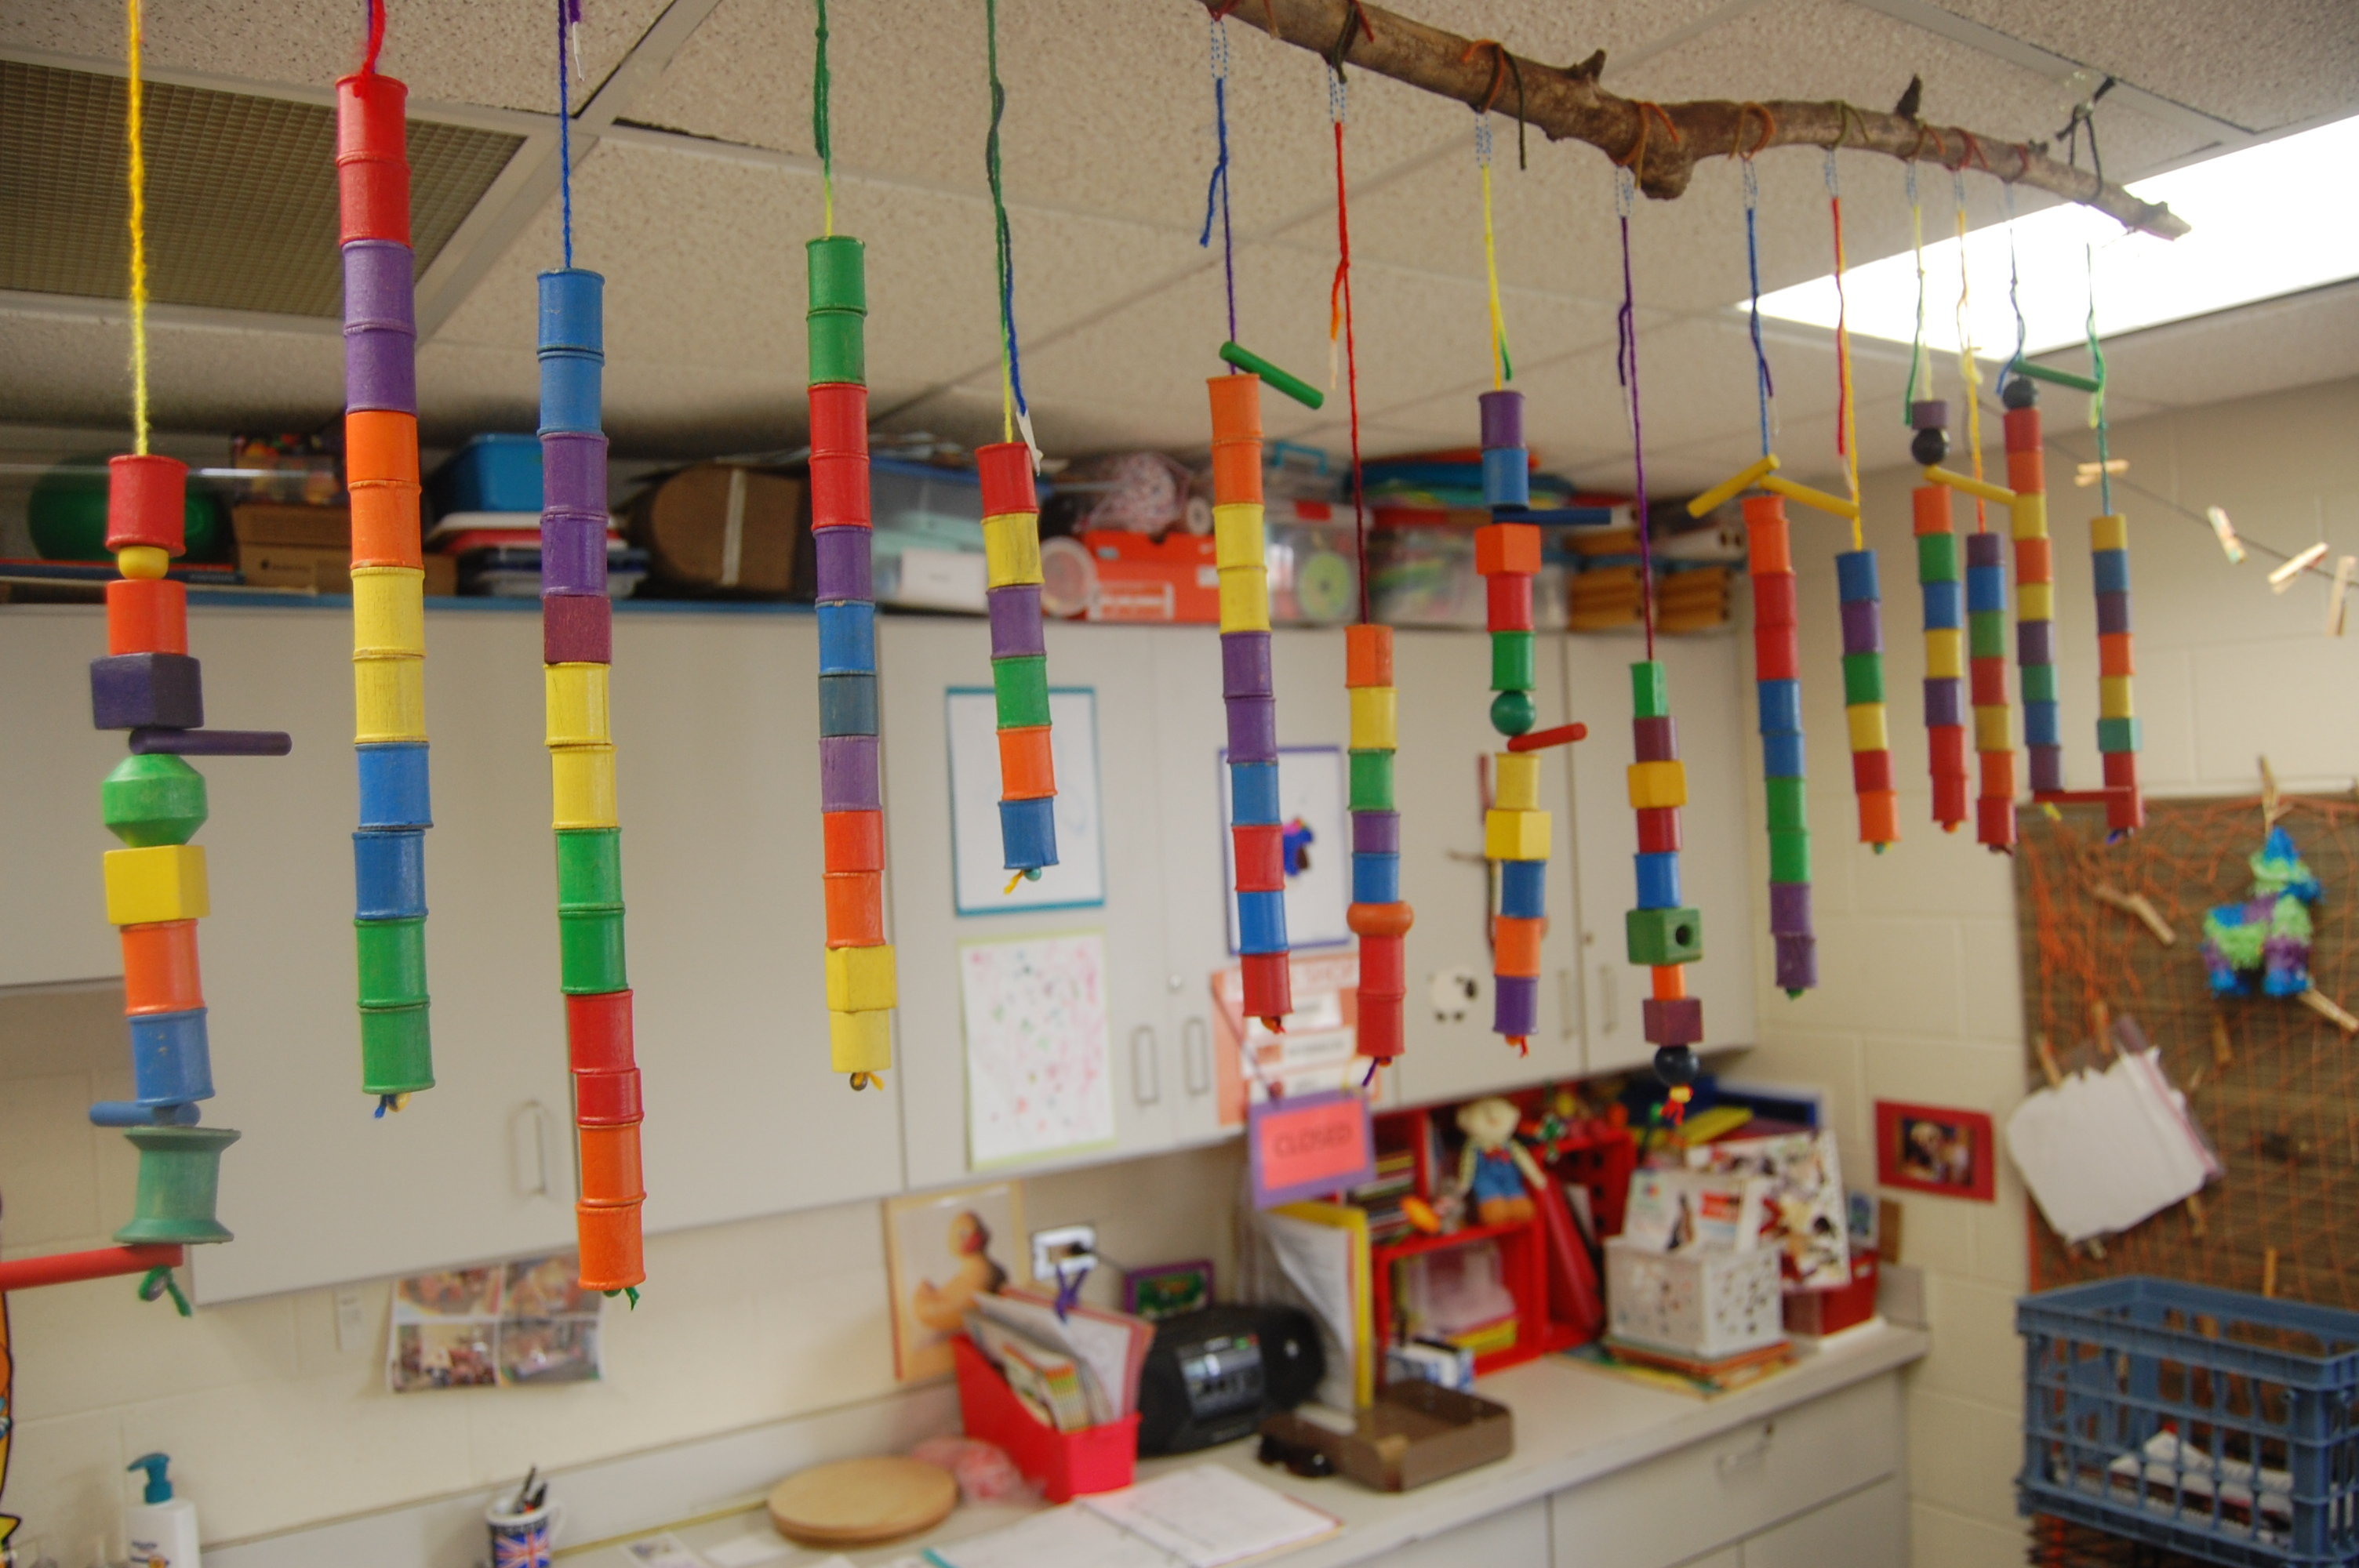 Classroom decorating ideas and also hanging ceiling decorations for classroom and also classroom christmas decorations